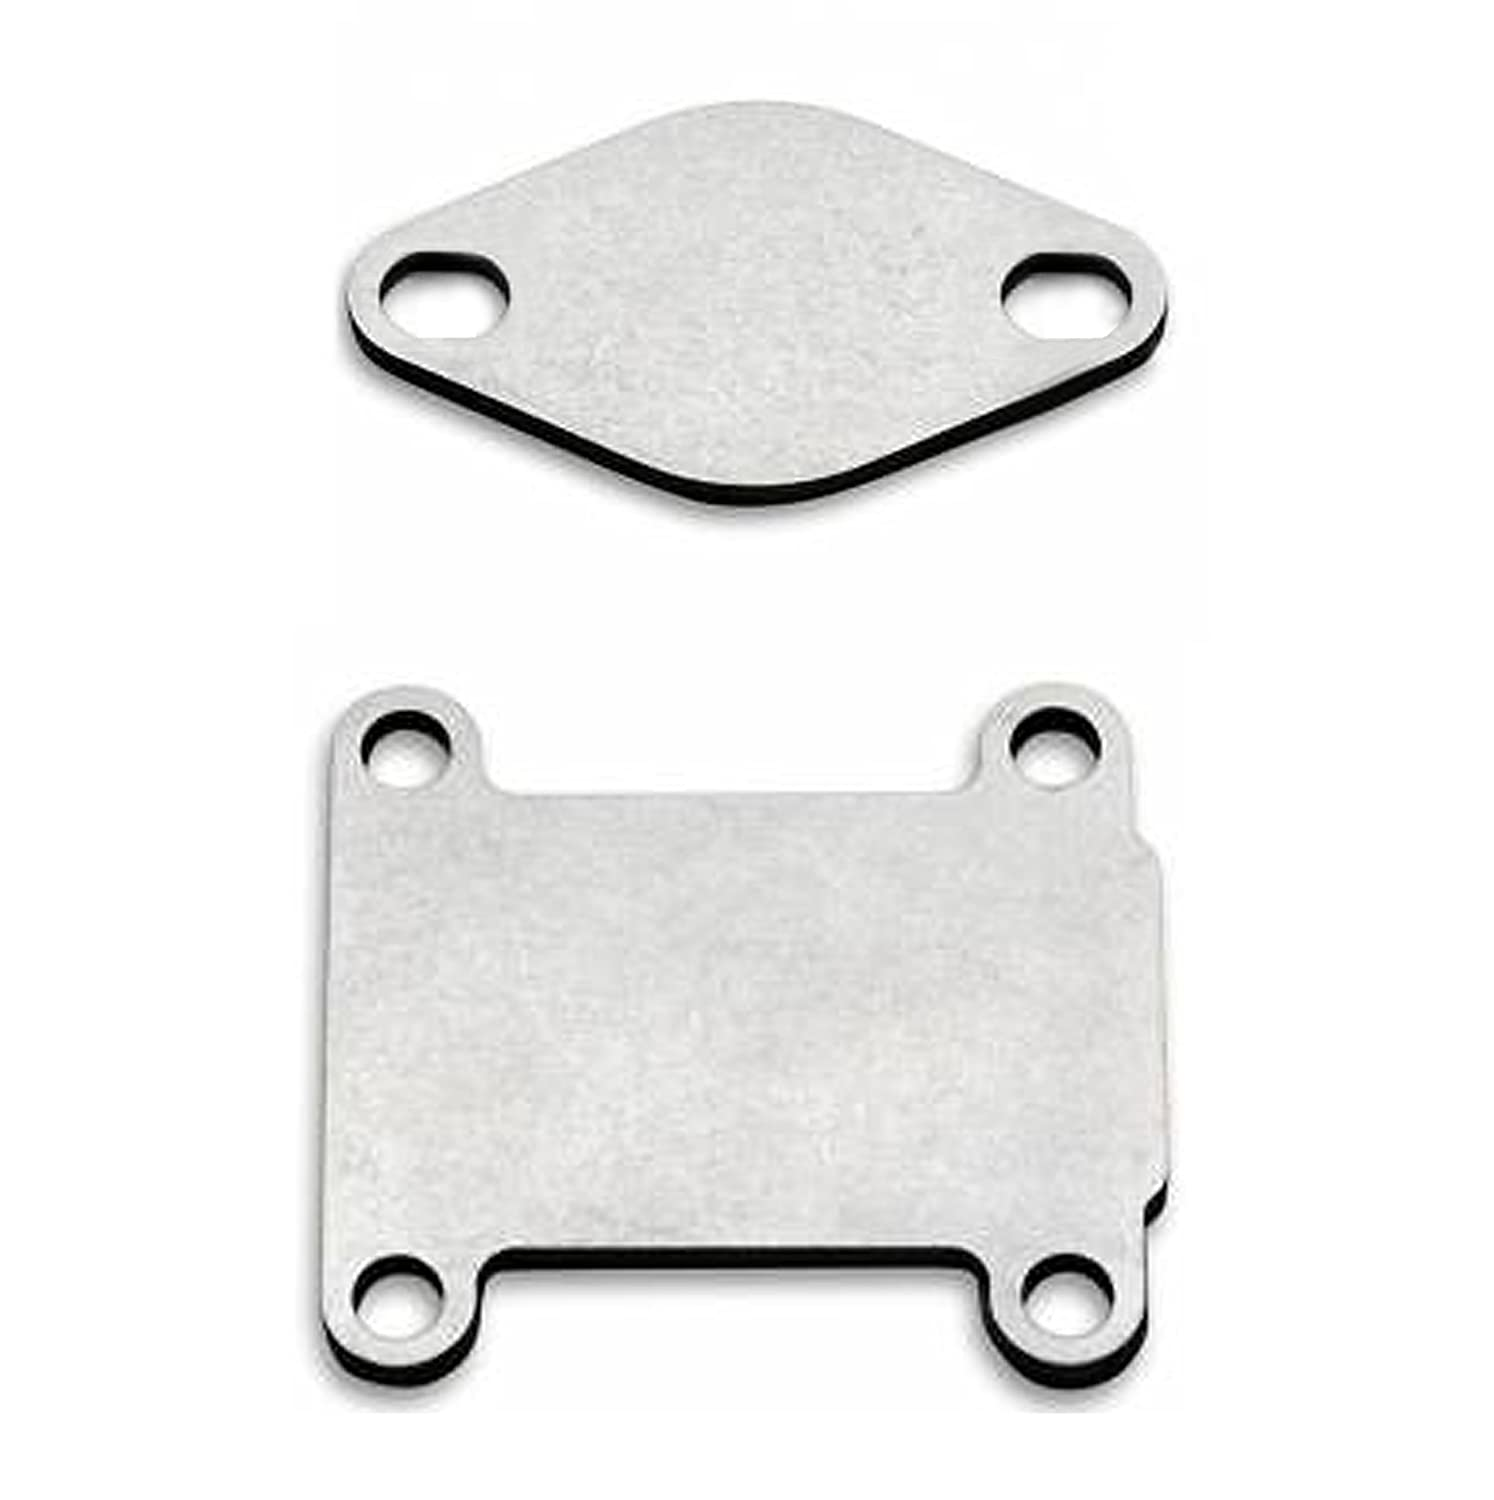 NEW EGR DELETE REMOVAL BLANKING PLATES STAINLESS STEEL 2 PLATES 1.9 CDTI ENGINES autosteel